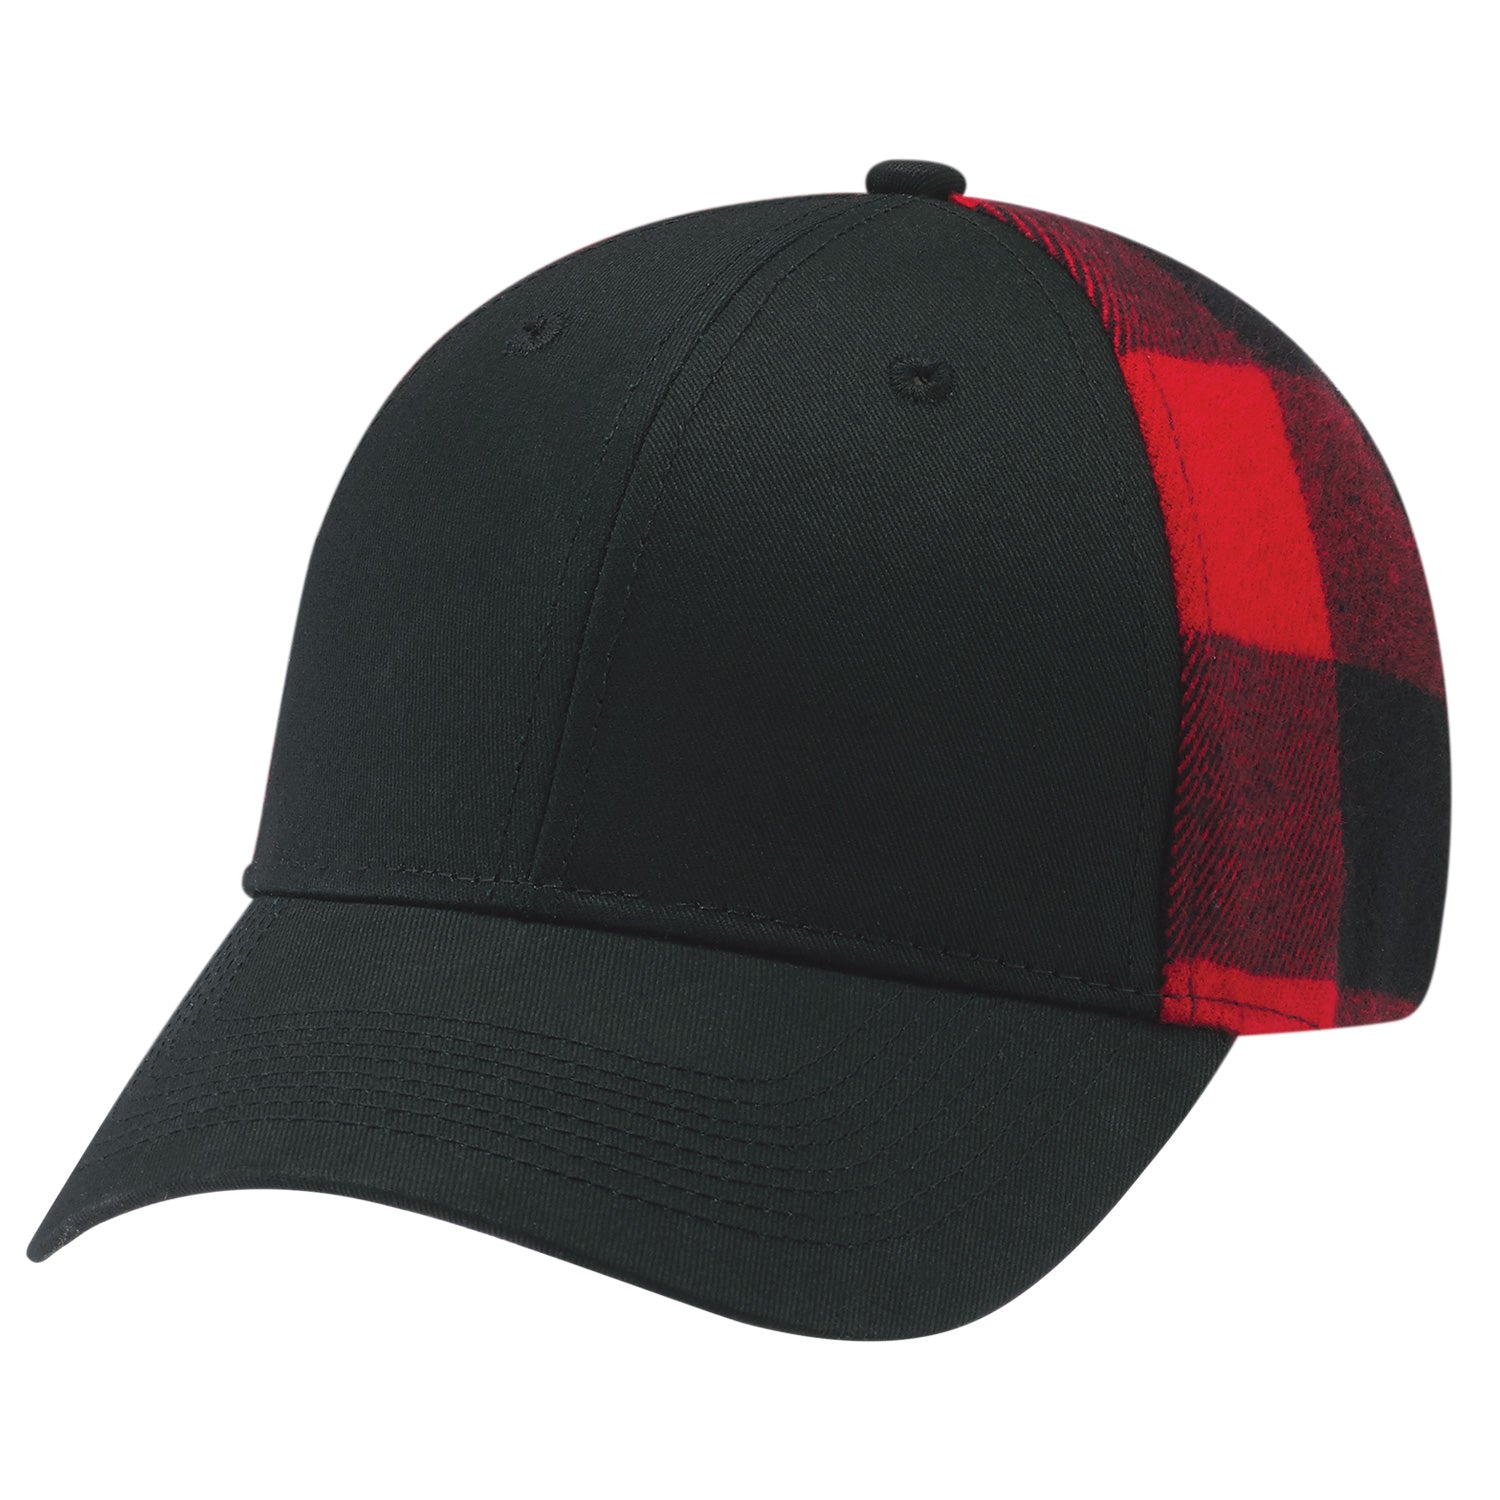 AJM COTTON DRILL/ACRYLIC LUMBERJACK PLAID CAP